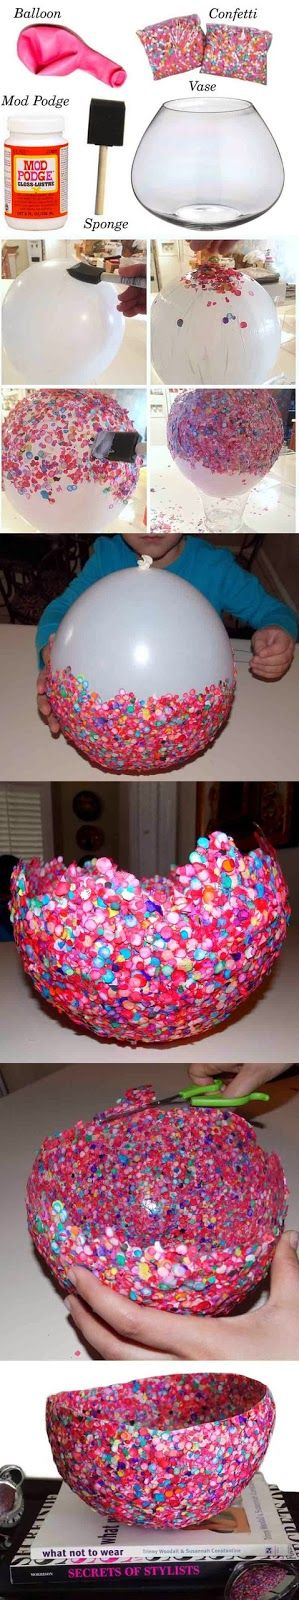 Easy DIY Crafts: DIY Confetti Bowl